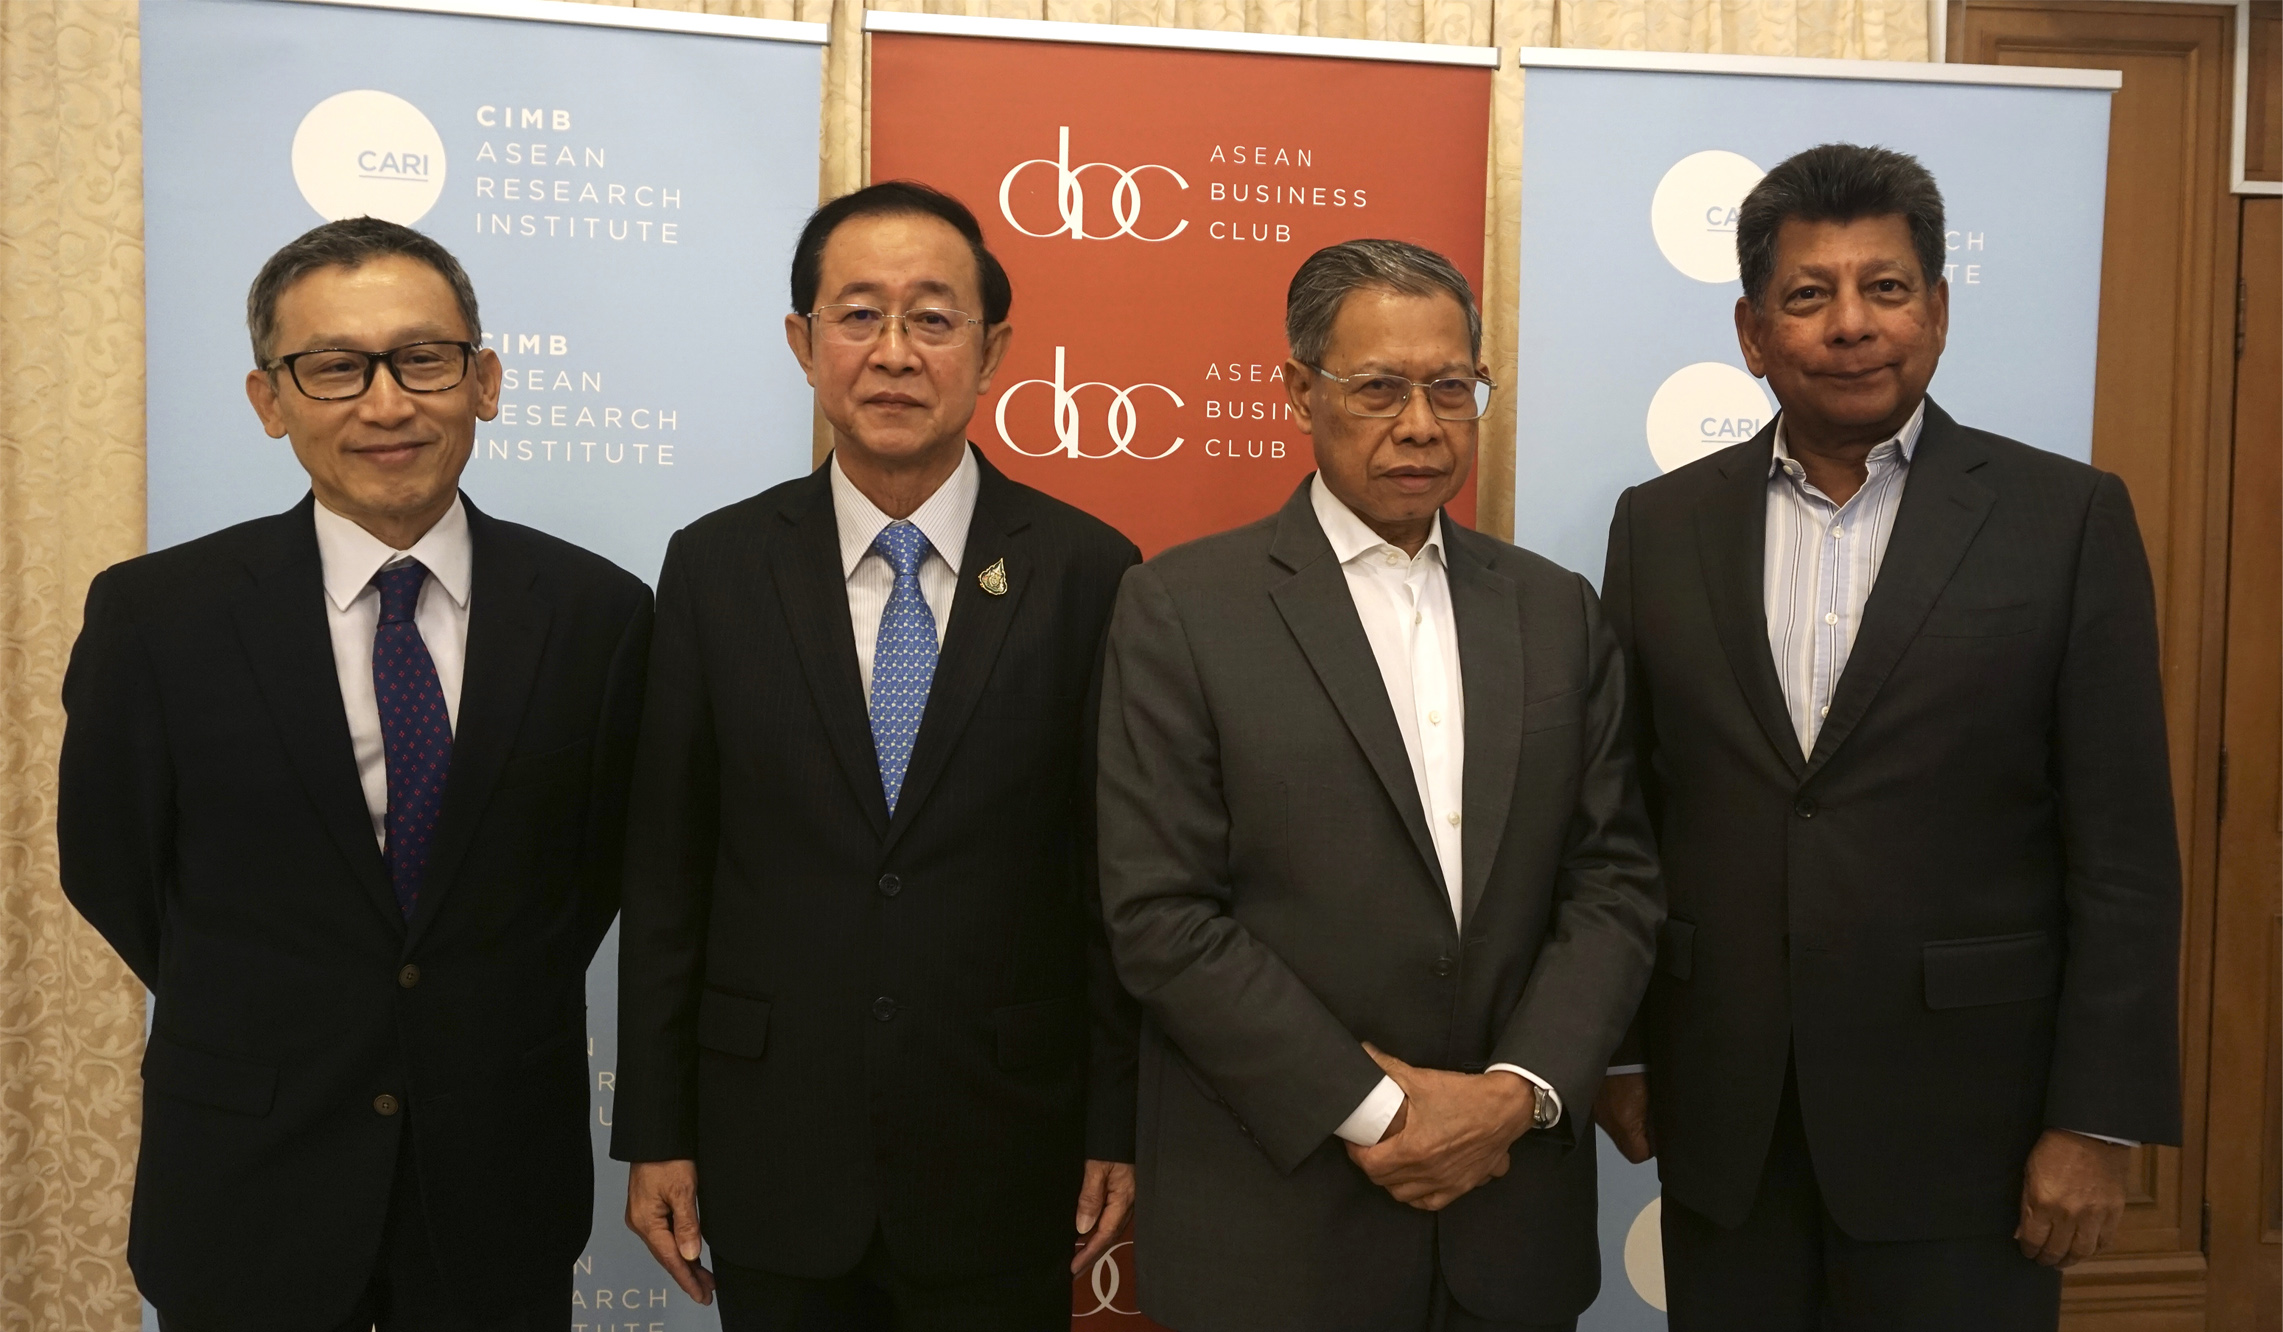 photo of (L-R): H.E. Narong Sasitorn, Ambassador of Thailand to Malaysia; H.E. Arkhom Termpittayapaisith, Former Minister of Transport Thailand; YB Dato' Sri Mustapa Mohamed, Chairman, Bumiputera Agenda Steering Unit (Teraju) and Member of Parliament for P30 Jeli; and Tan Sri Dr. Munir Majid, Chairman, CIMB ASEAN Research Institute and President, ASEAN Business Club.